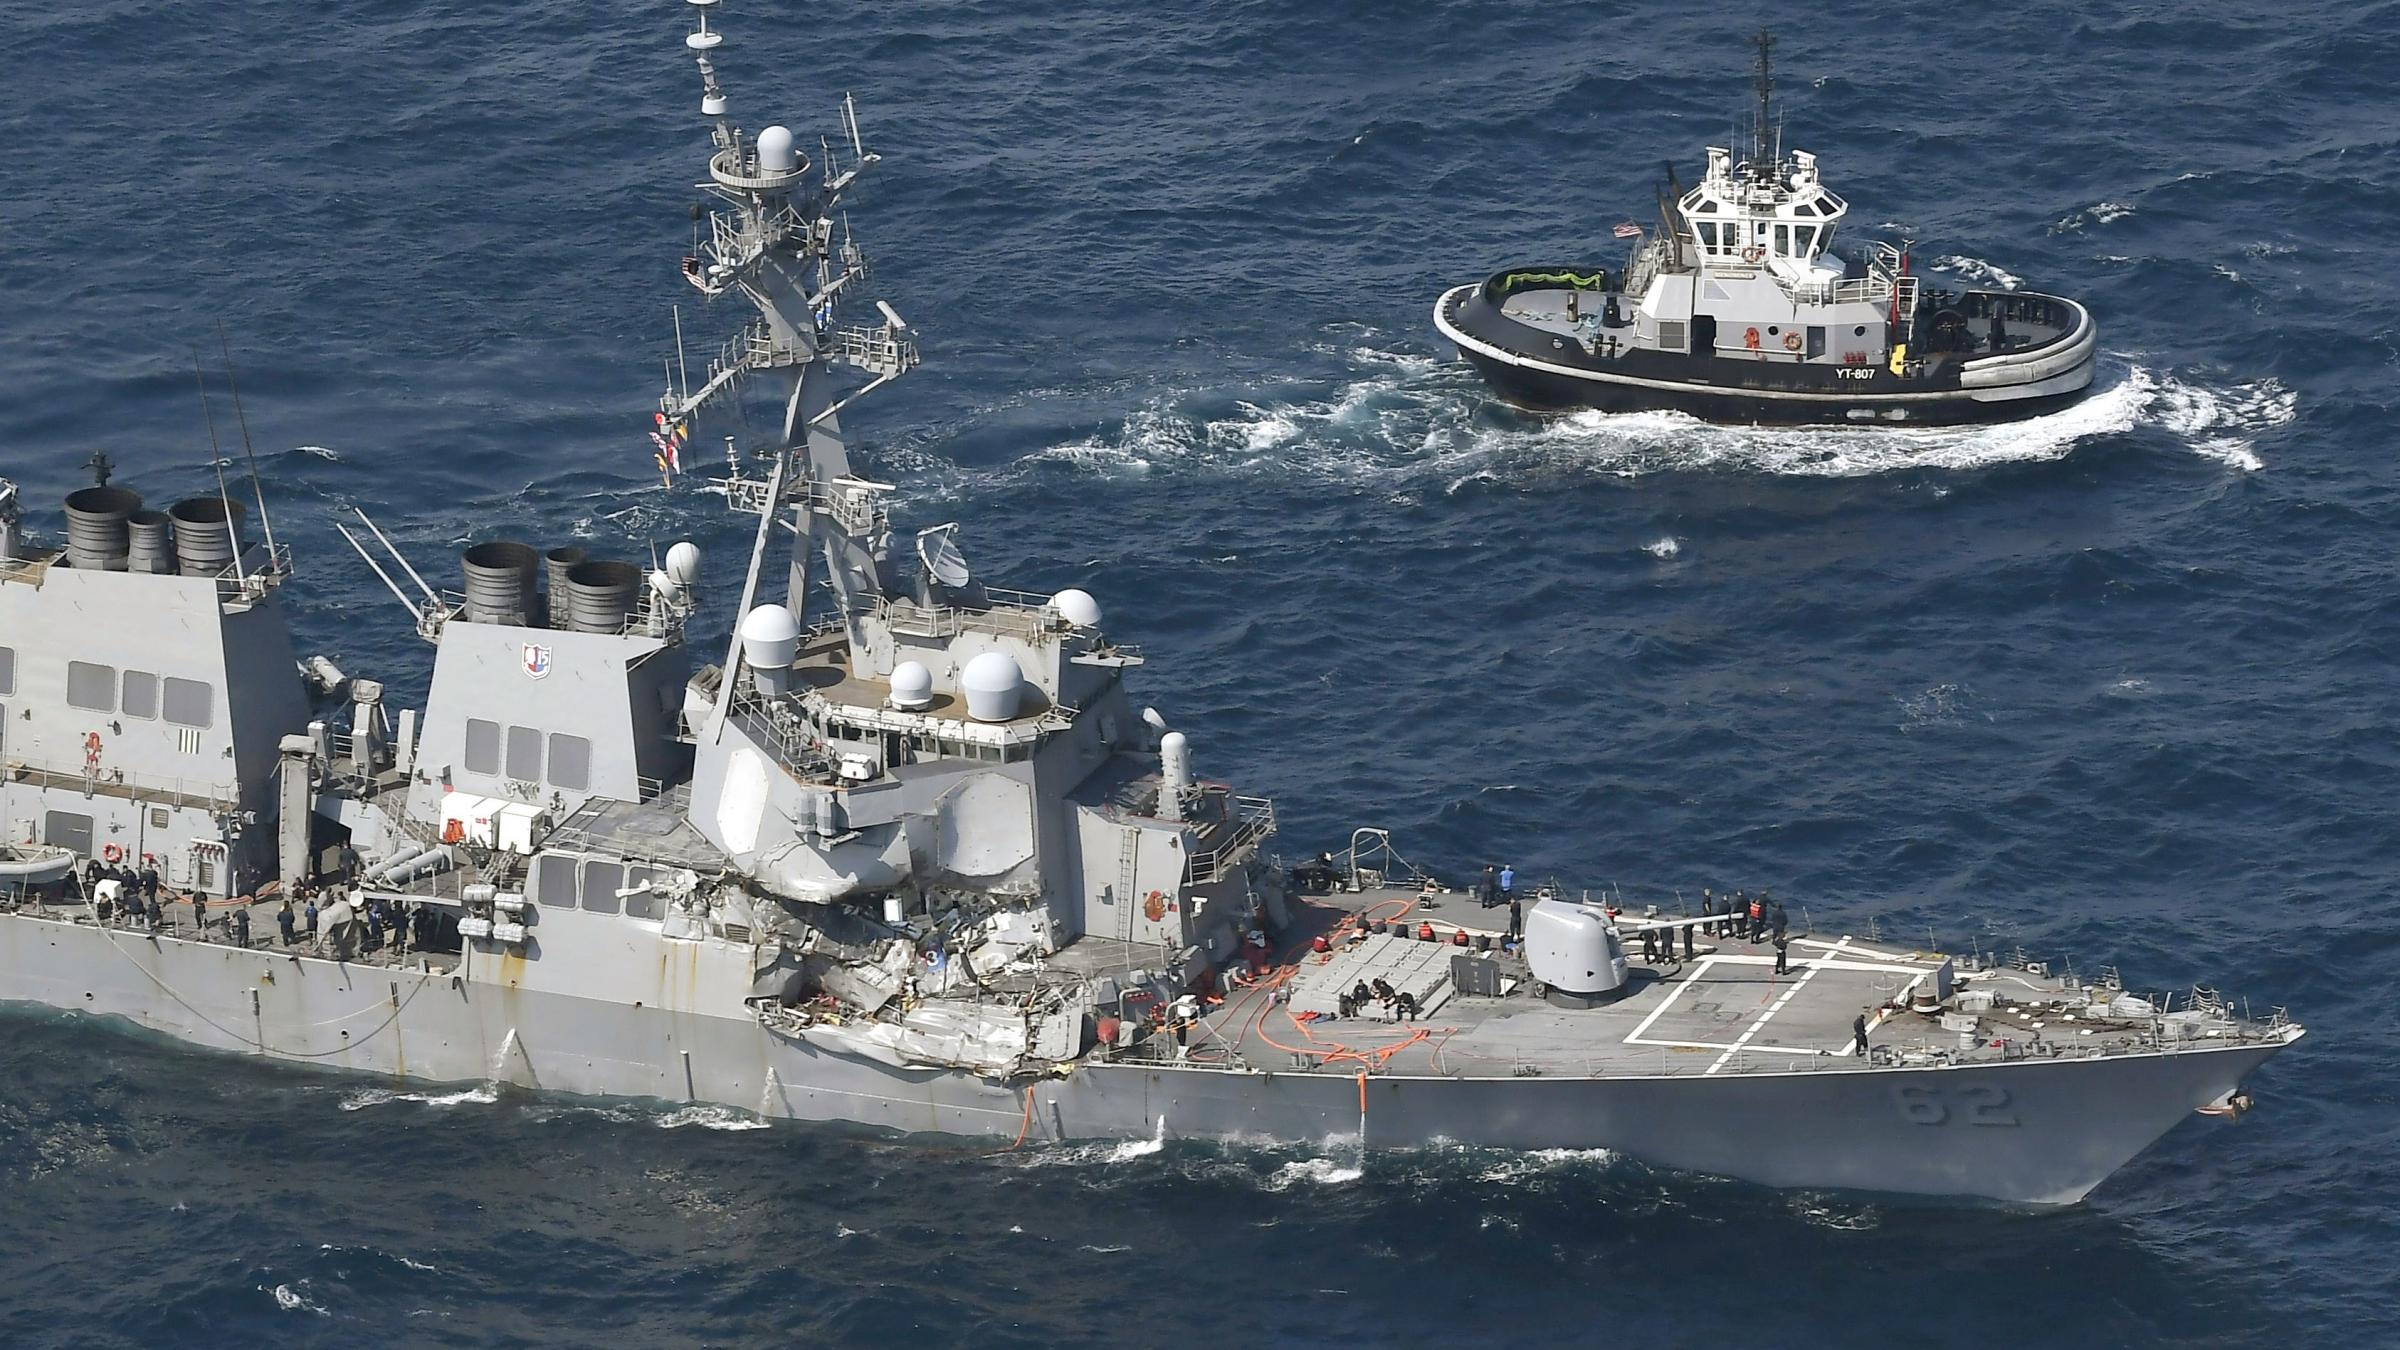 Multiple Sailors Missing After US Destroyer Collides With Container Ship